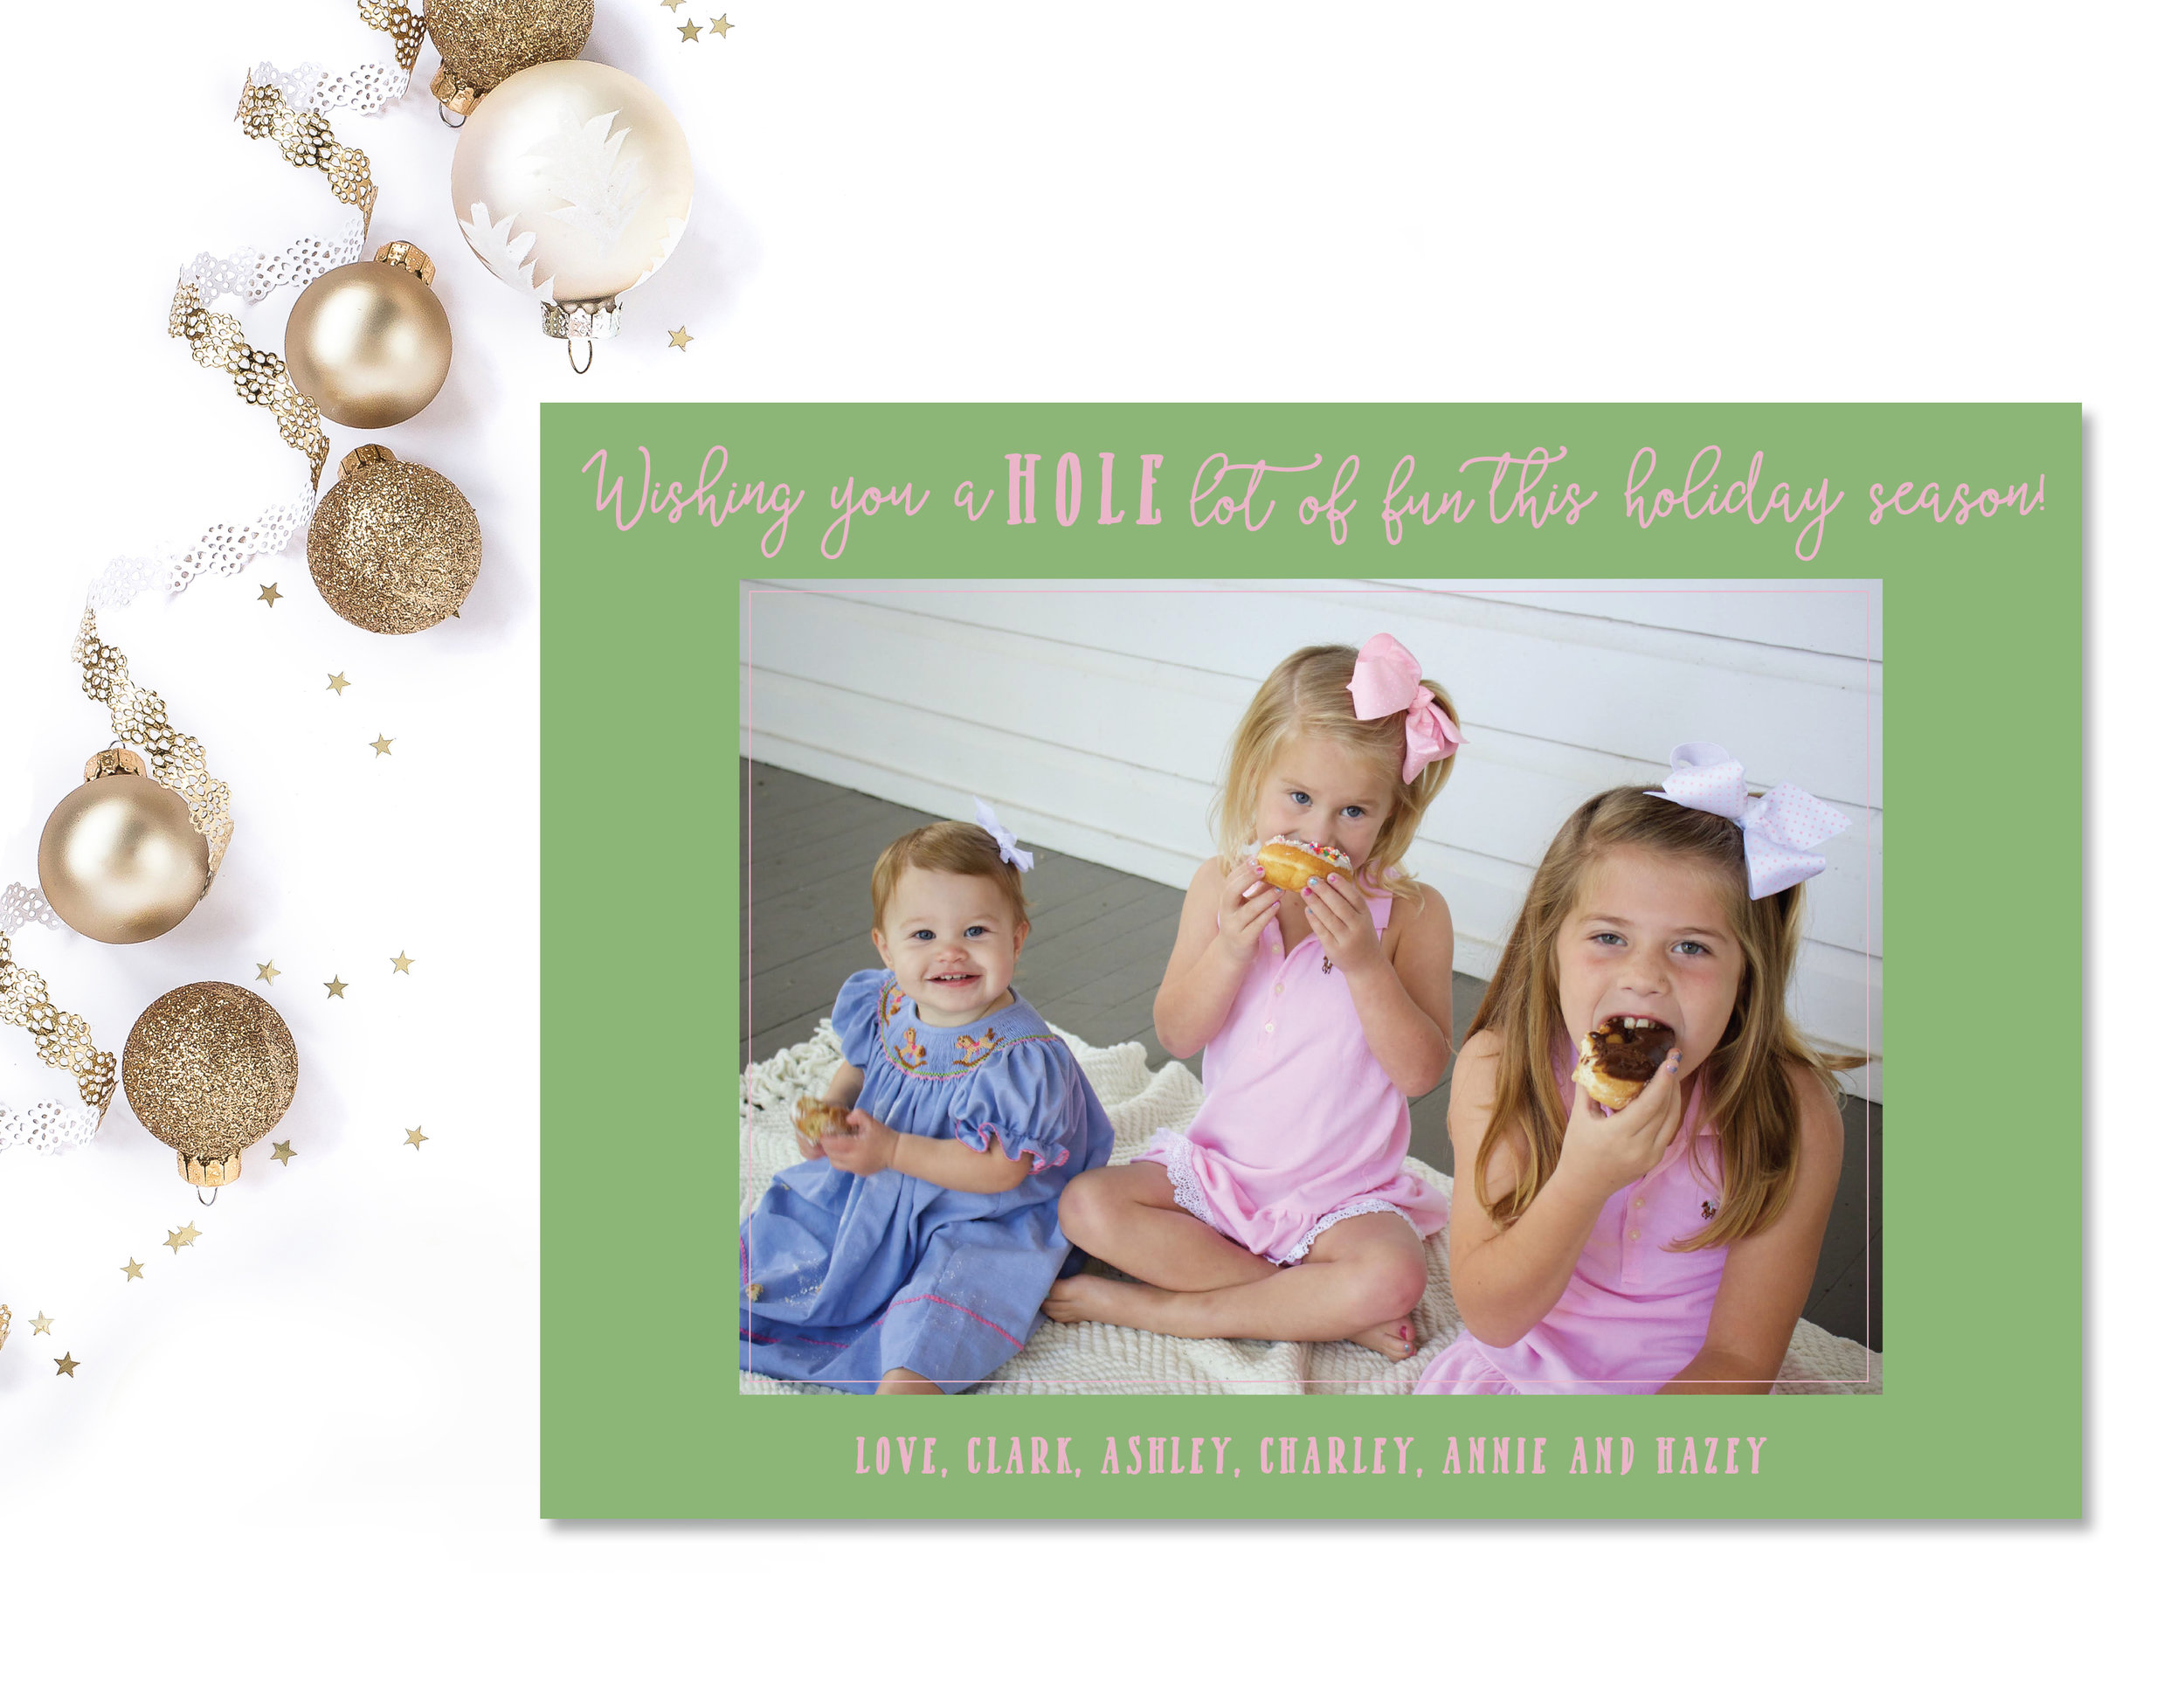 Ashley always has the best ideas for her holiday cards and this year was no different! I love the unique color palette we chose and the fun wording!